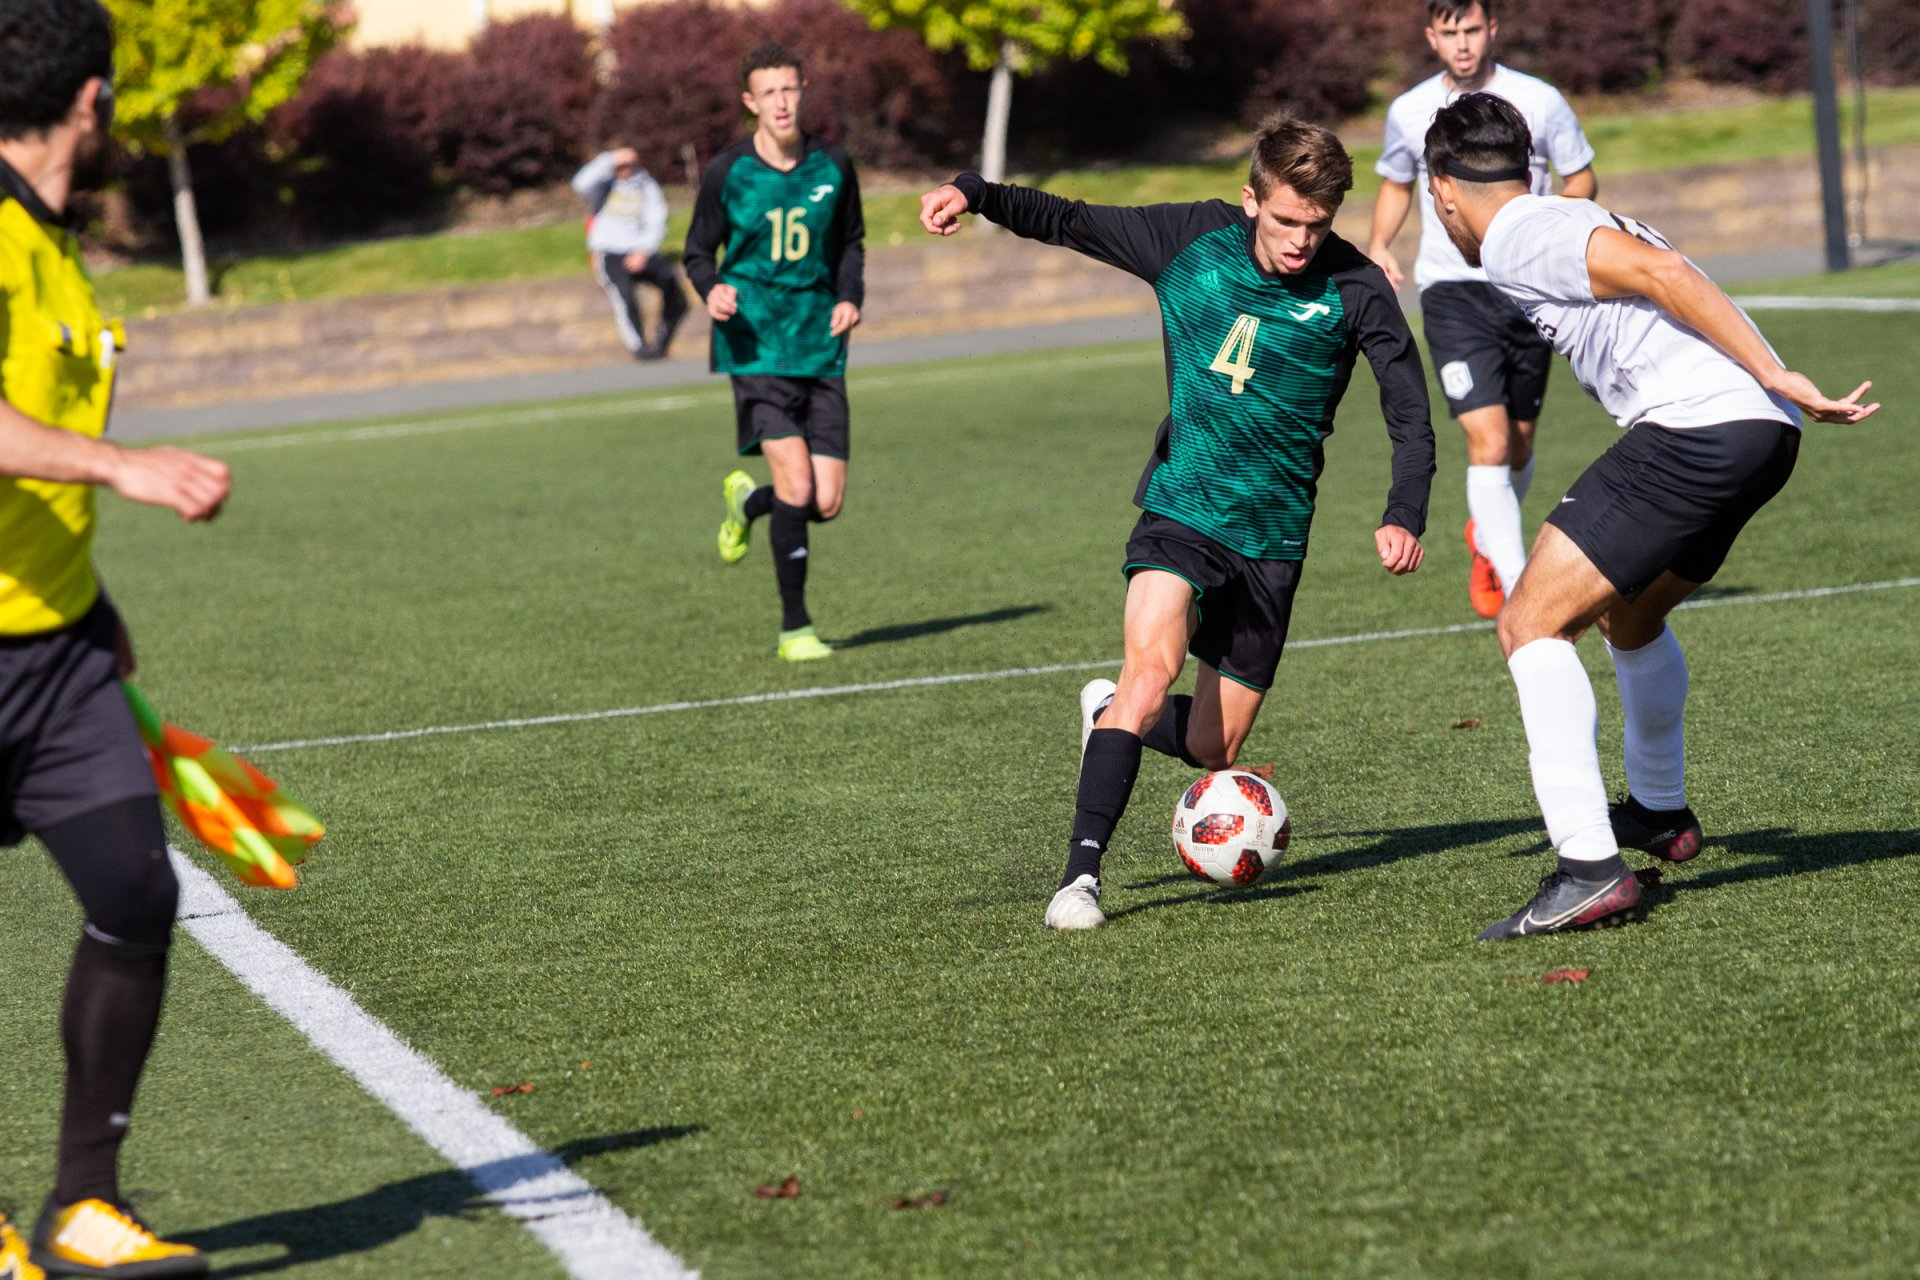 Humboldt State forward Devin Hauenstein battles for possession in the second half for the match against Cal State LA Nov. 9. | Photo by Thomas Lal